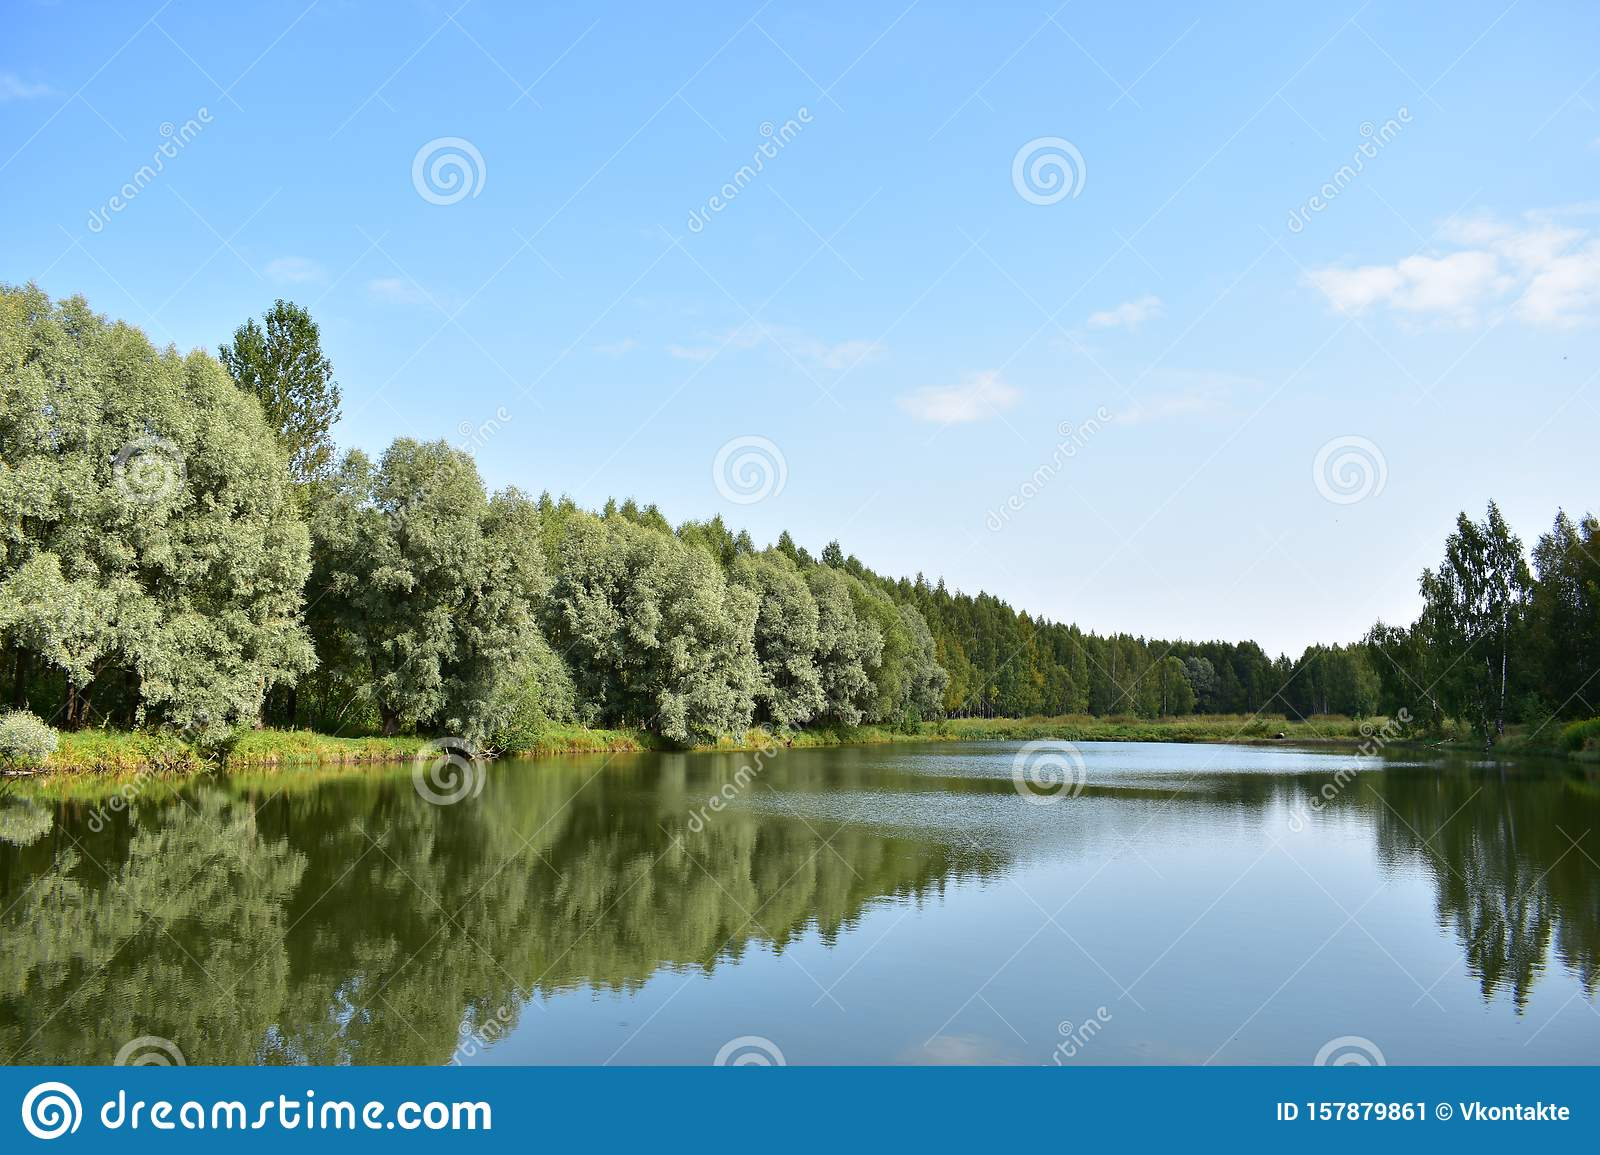 Forest Lake In The Water Reflected Growing On The Banks Of The Trees Glossy Leaves Of The Silver Willow, Curly Birch Grove Stock Image - Image of ...